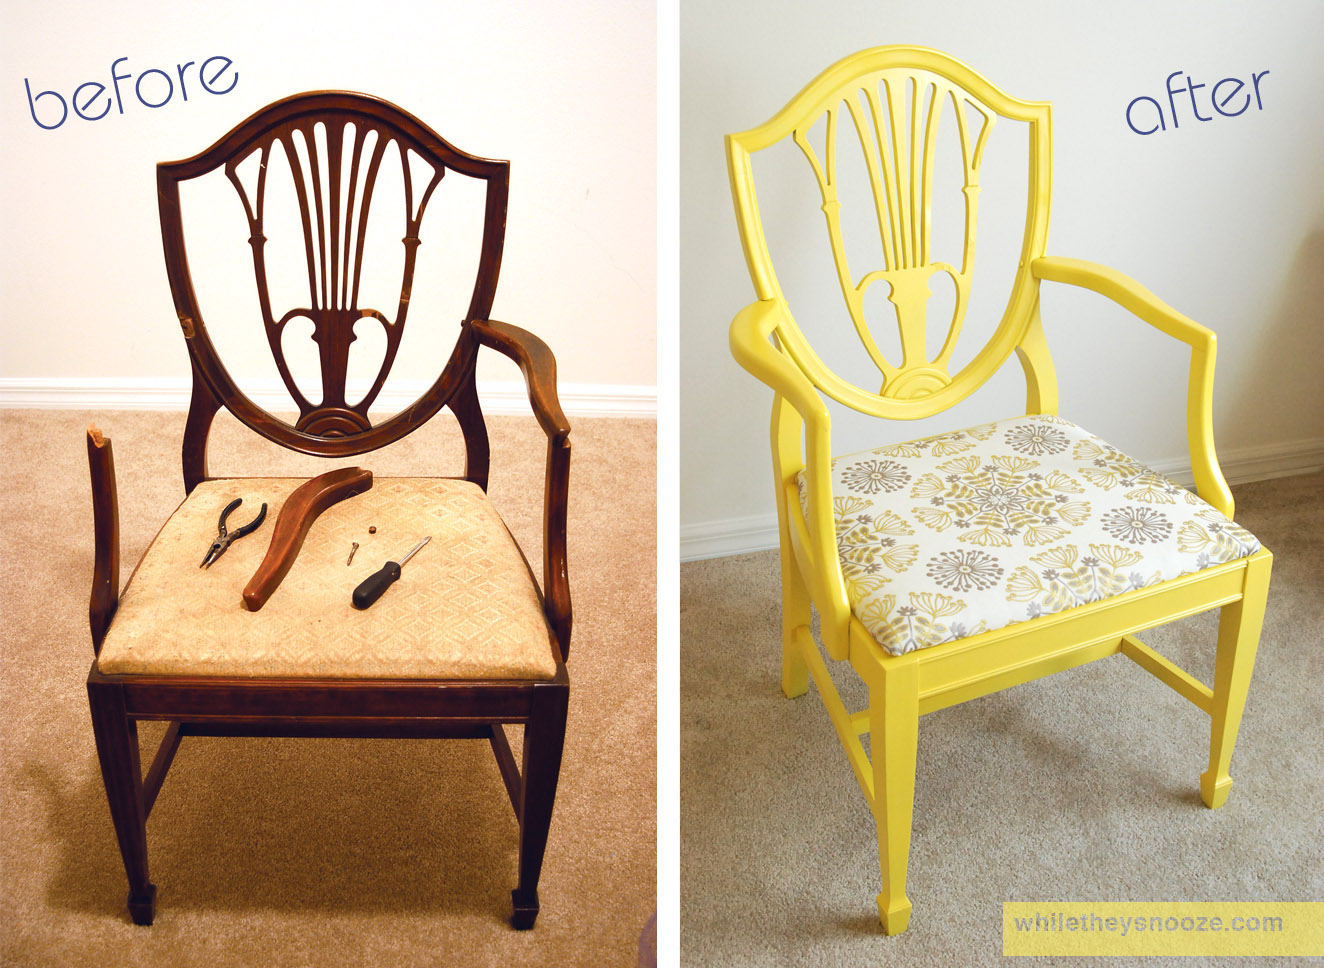 Diy Dining Chairs Makeover Chair Covers While They Snooze Side